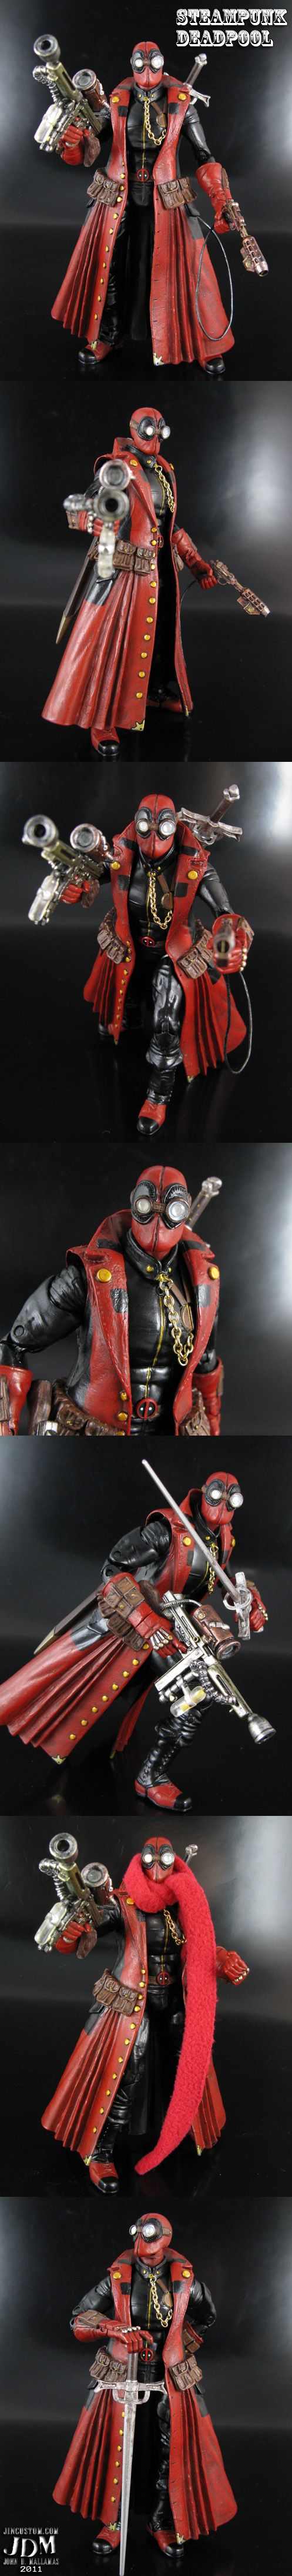 The Merc with a ray gun, Steampunk Deadpool by *Jin-Saotome on deviantART | Follow here http://pinterest.com/cakespinyoface/comics-comix-geekery/ for even more Comic Book Geekery-- original art, mashups and more!